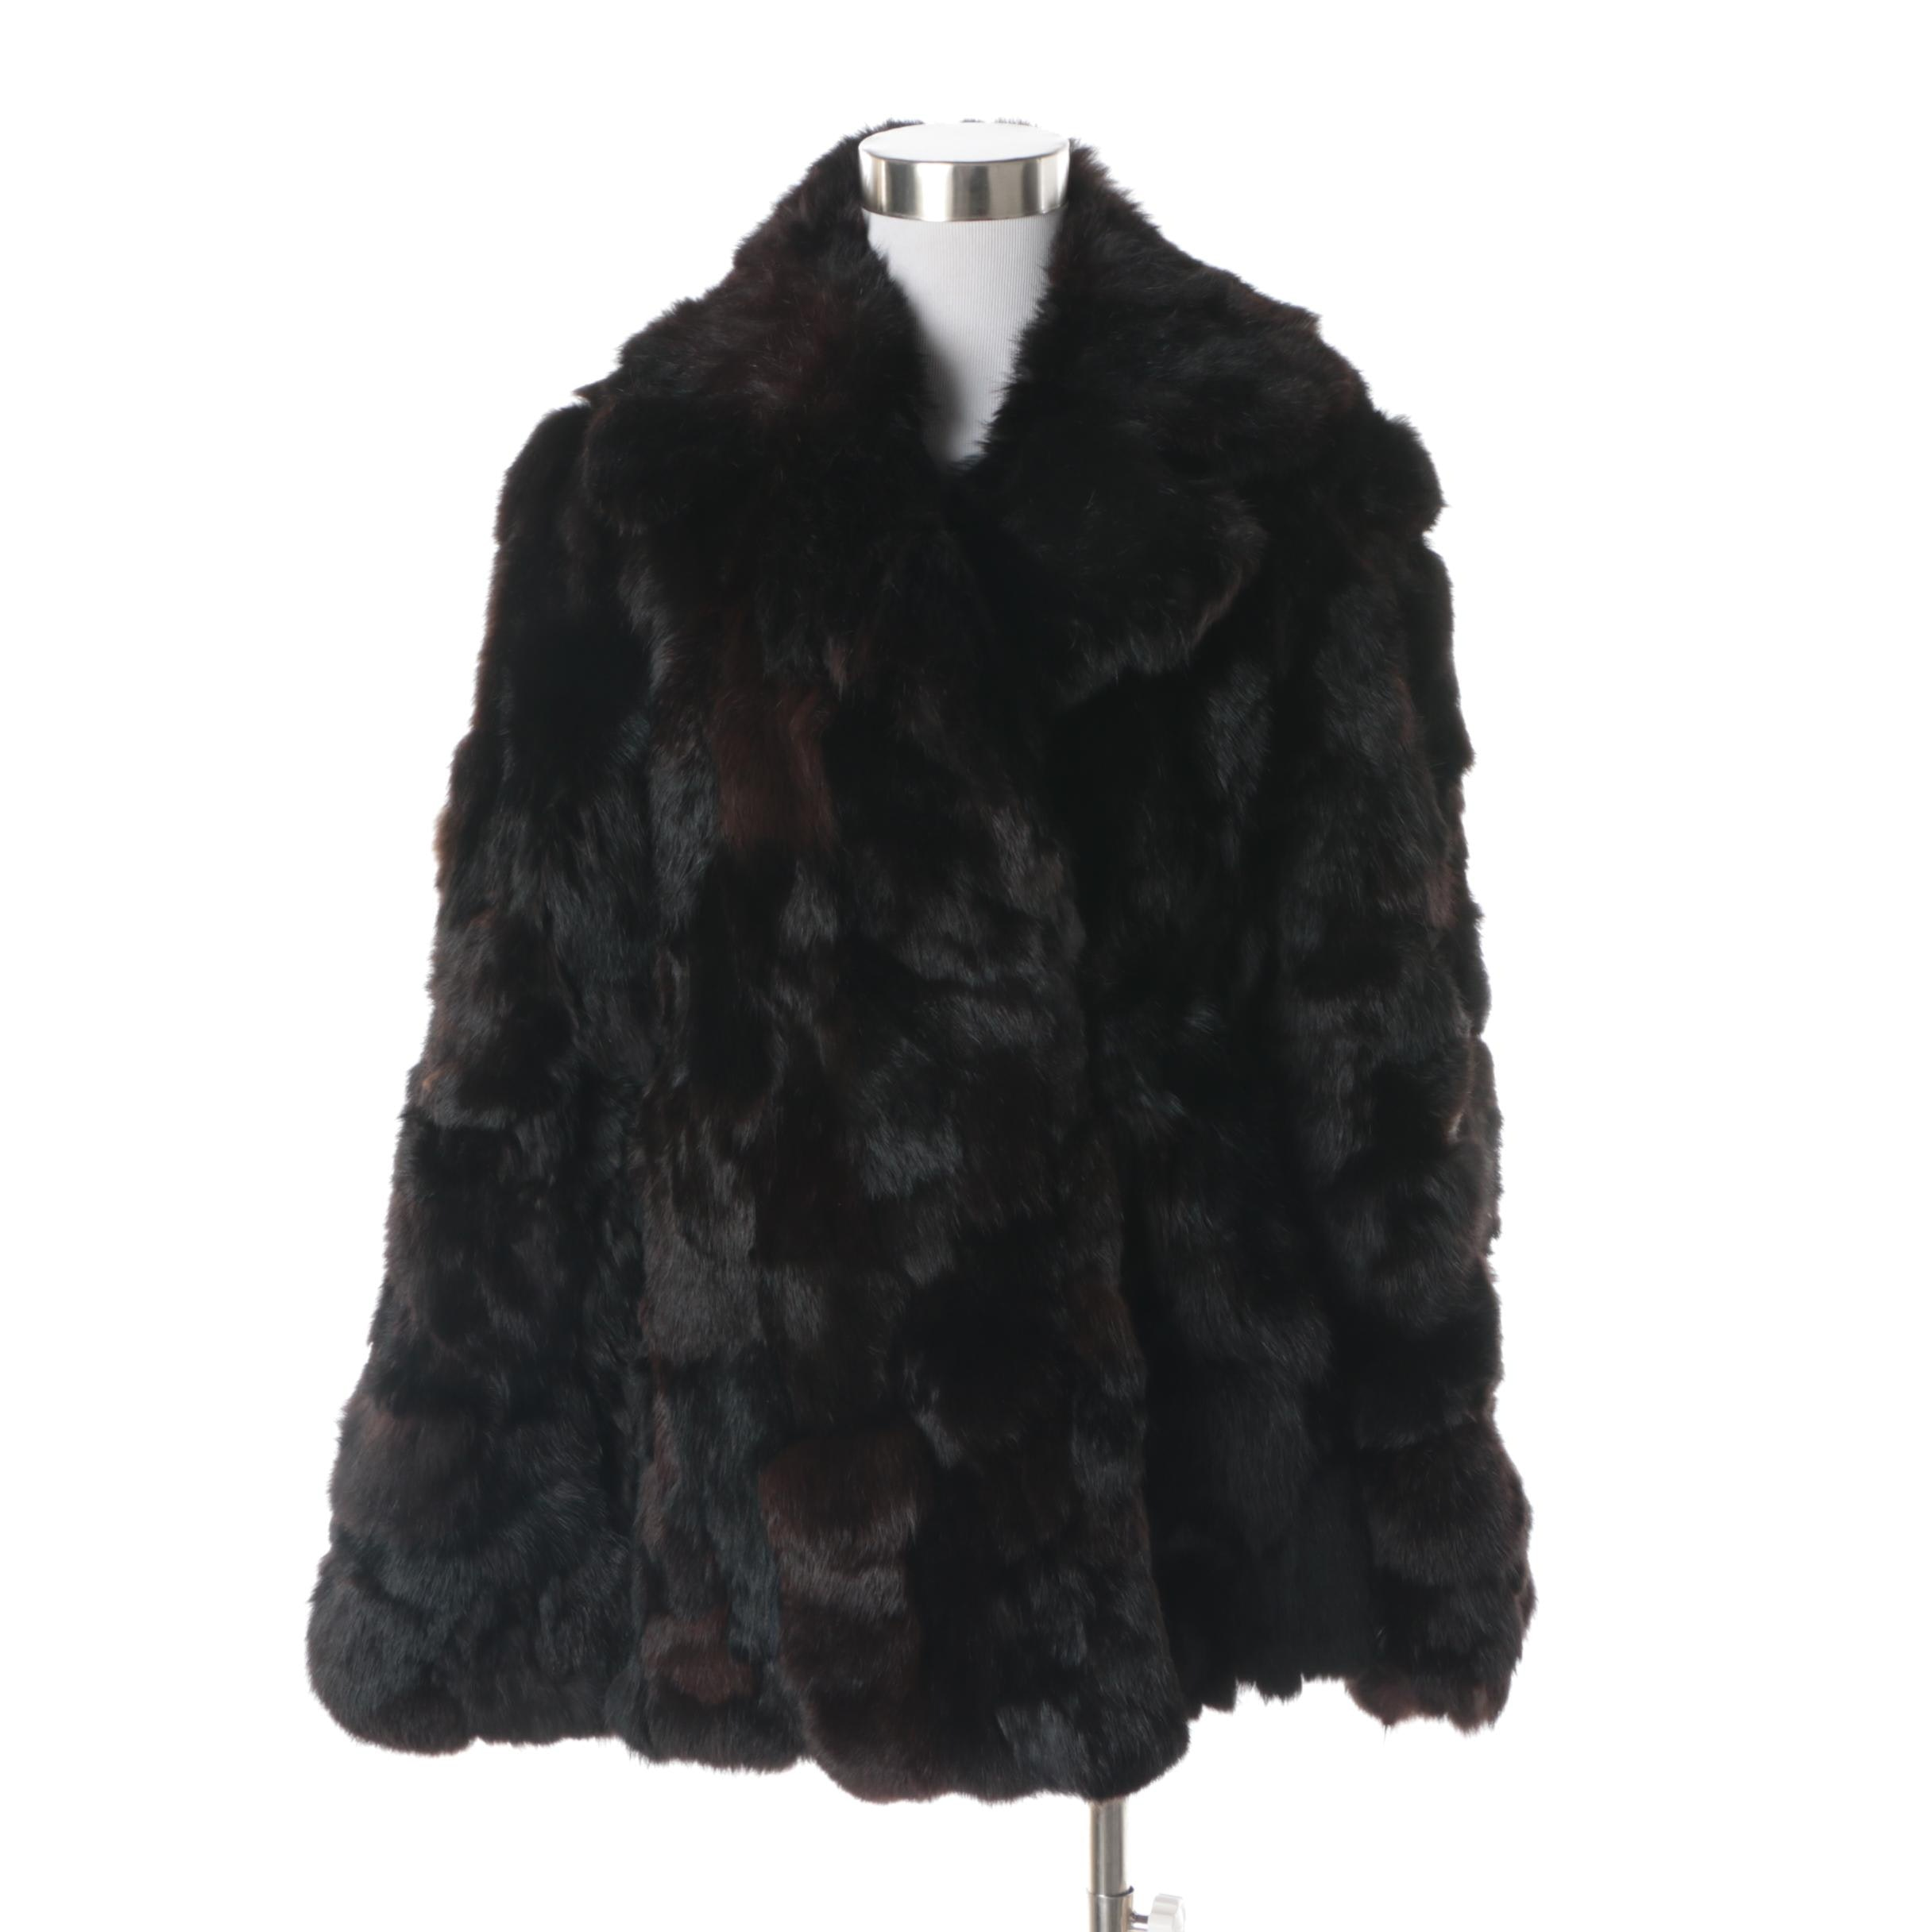 Women's Black and Brown Rabbit Fur Coat